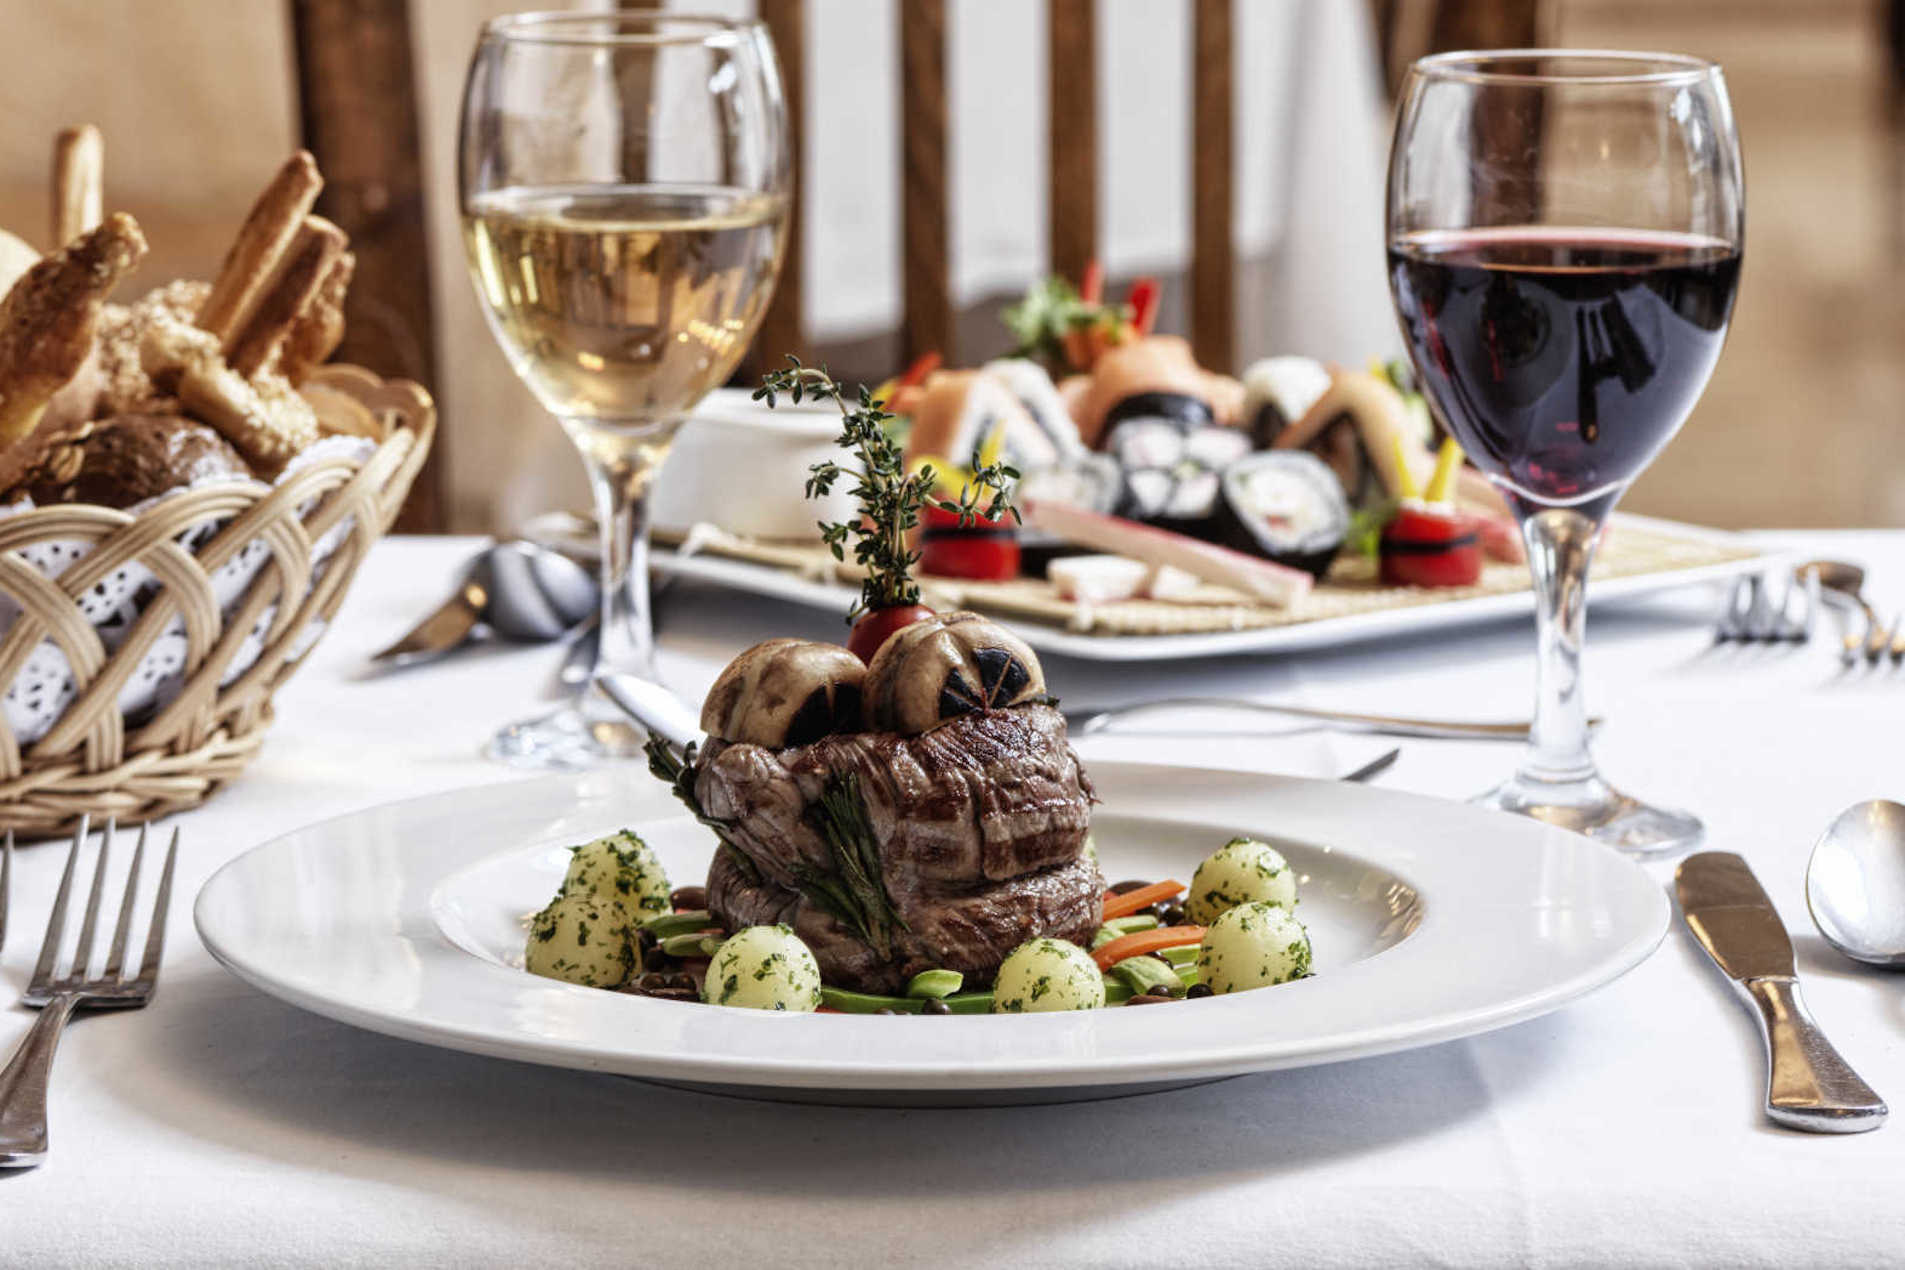 The dining at Ancient Sands and a steak plate served with drinks and bakeries basket in El Gouna resort restaurant